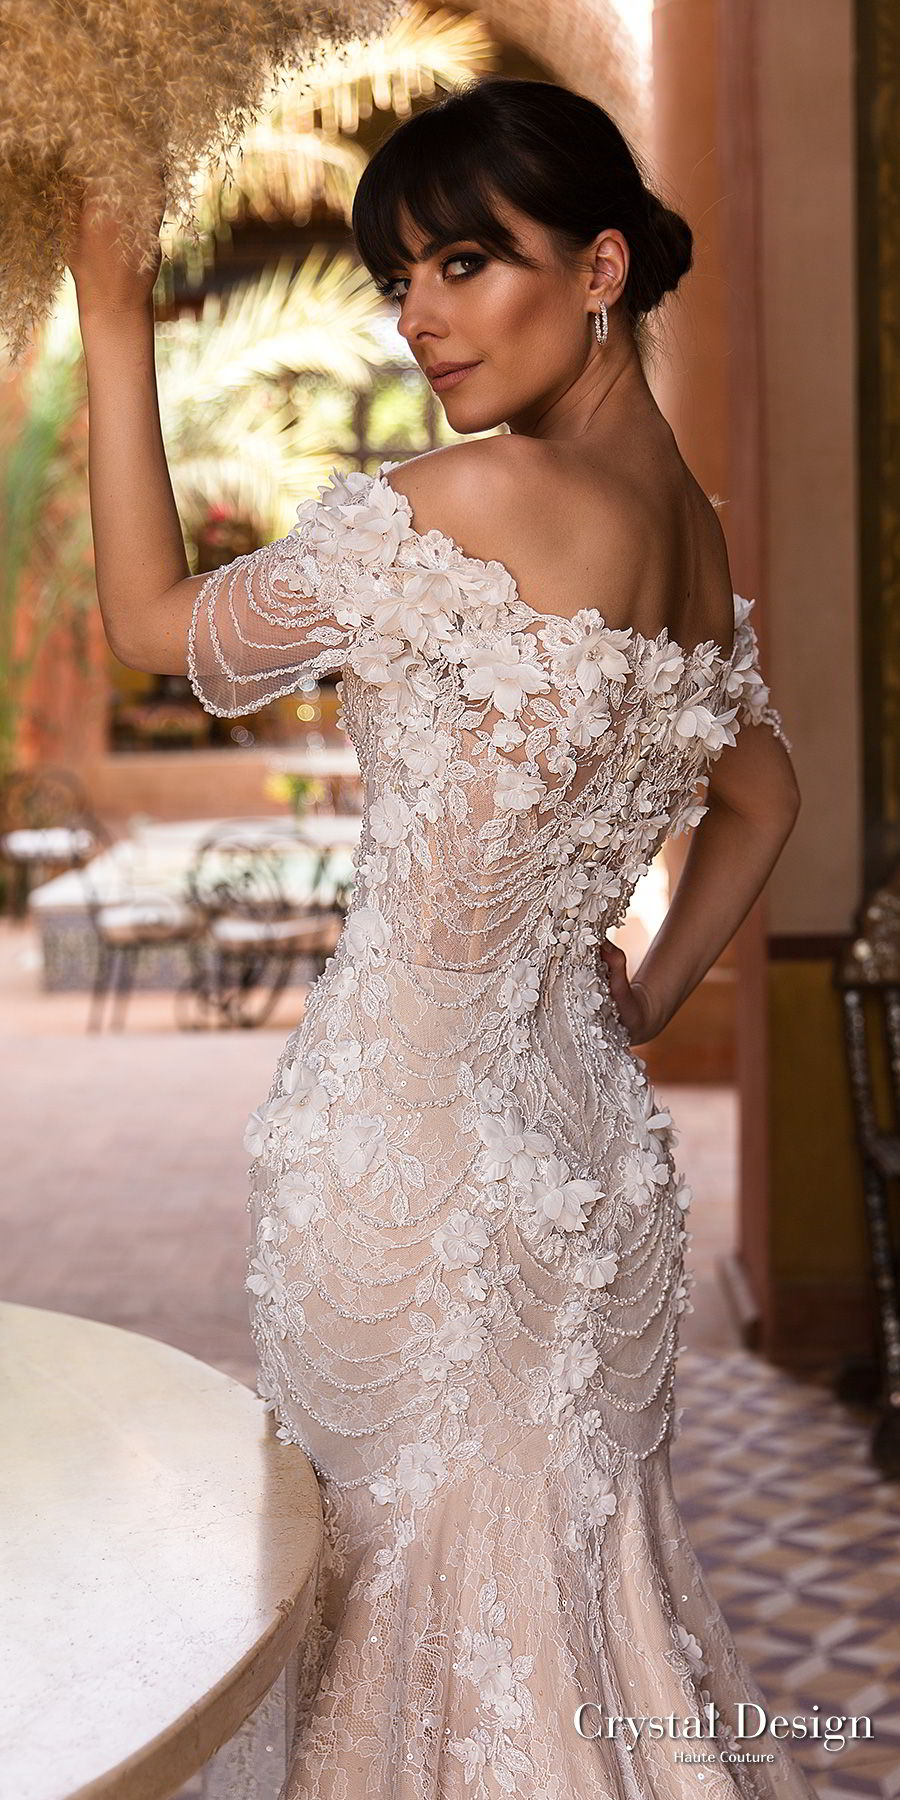 crystal design 2018 off the shoulder straight across neck full embellishment romantic fit and flare wedding dress chapel train (grace) zbv